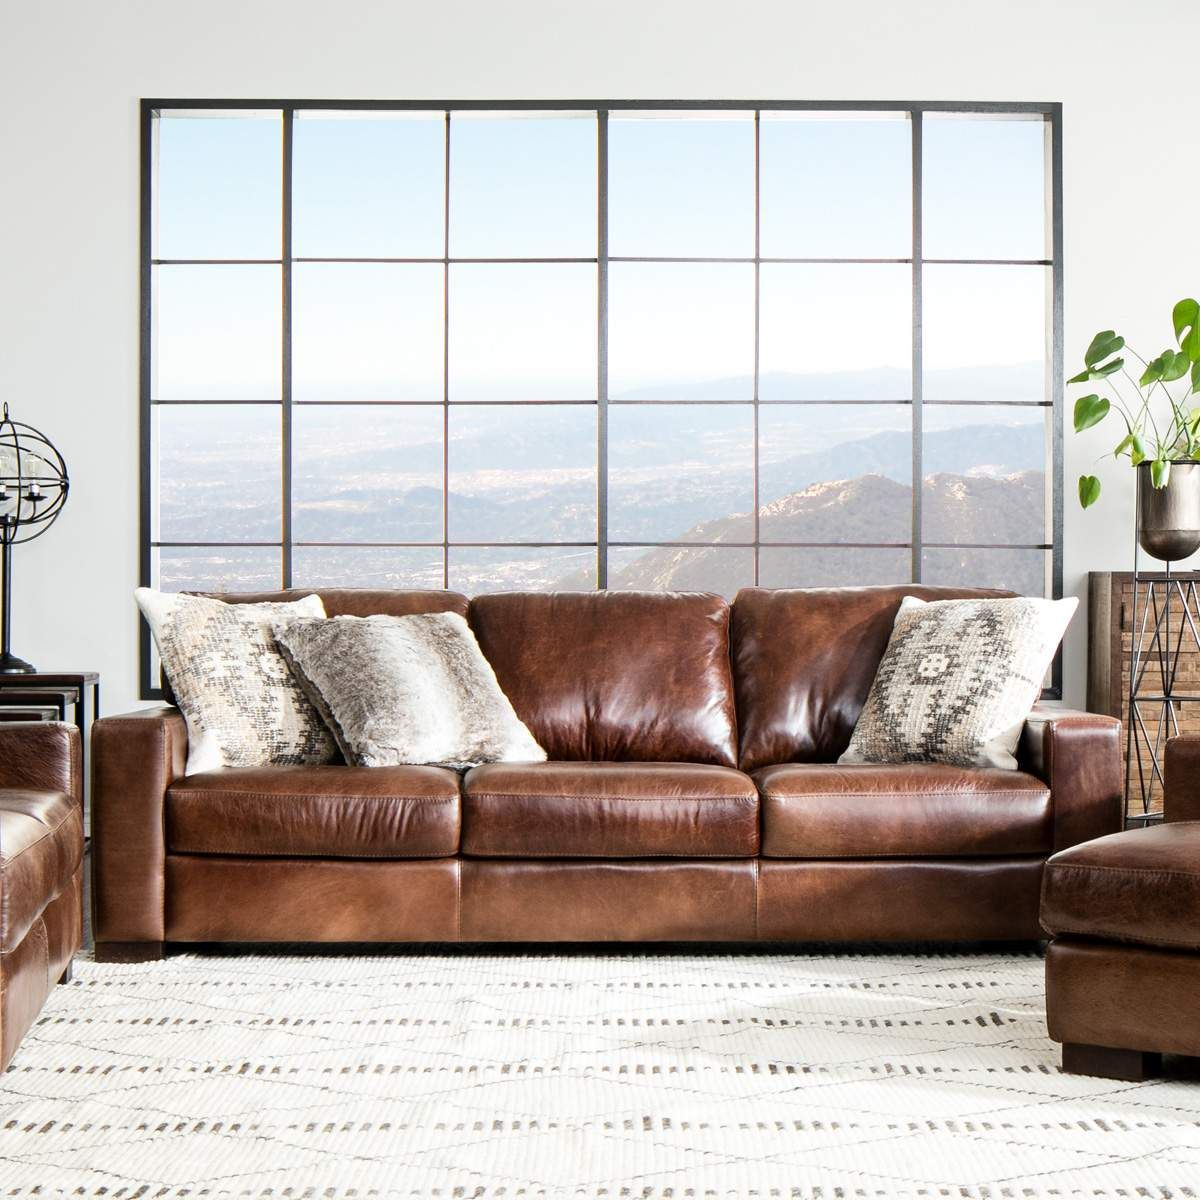 The Handsome Landmark Brown Leather Living Room Set Is Distinguished By Its Comfortable Desi With Images Living Room Leather Top Grain Leather Sofa Leather Living Room Set